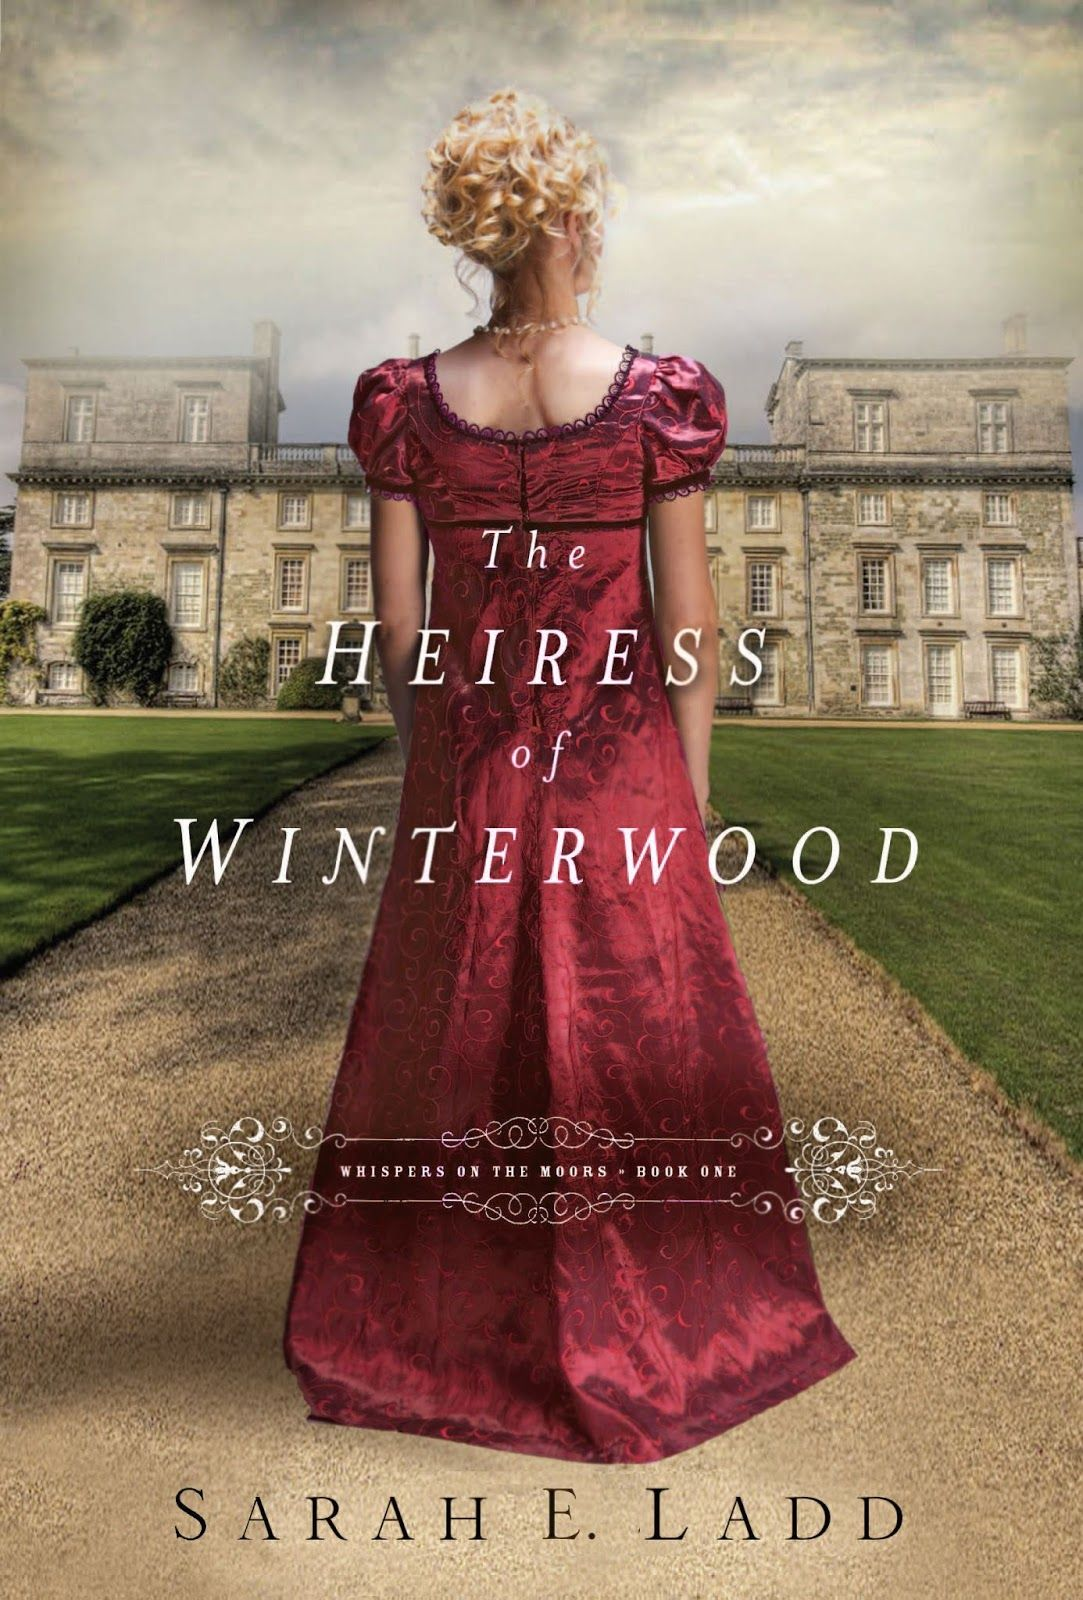 The Heiress of Winterwood, by Sarah E. Ladd. Read my